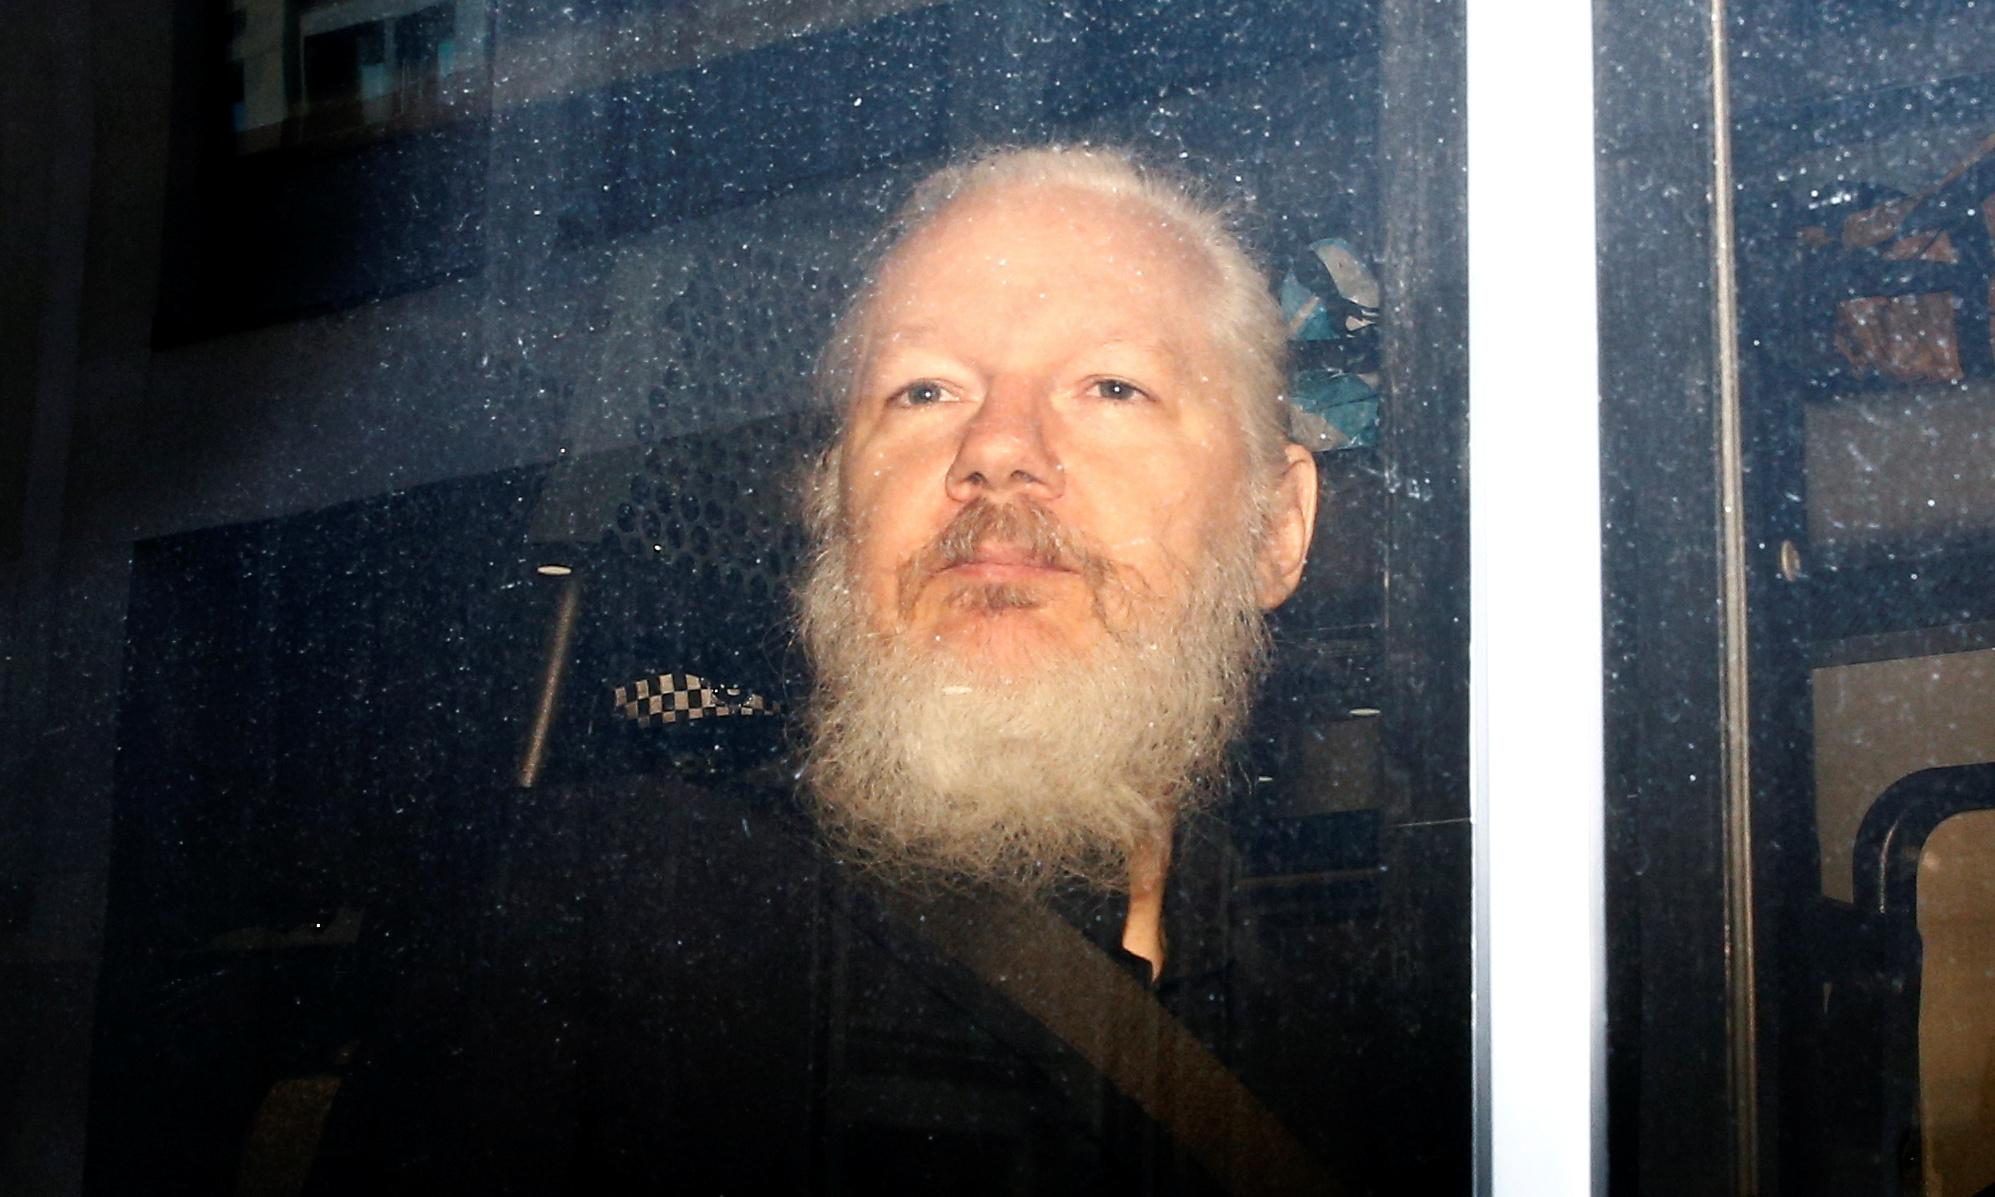 The seven-year itch: Assange's awkward stay in the embassy